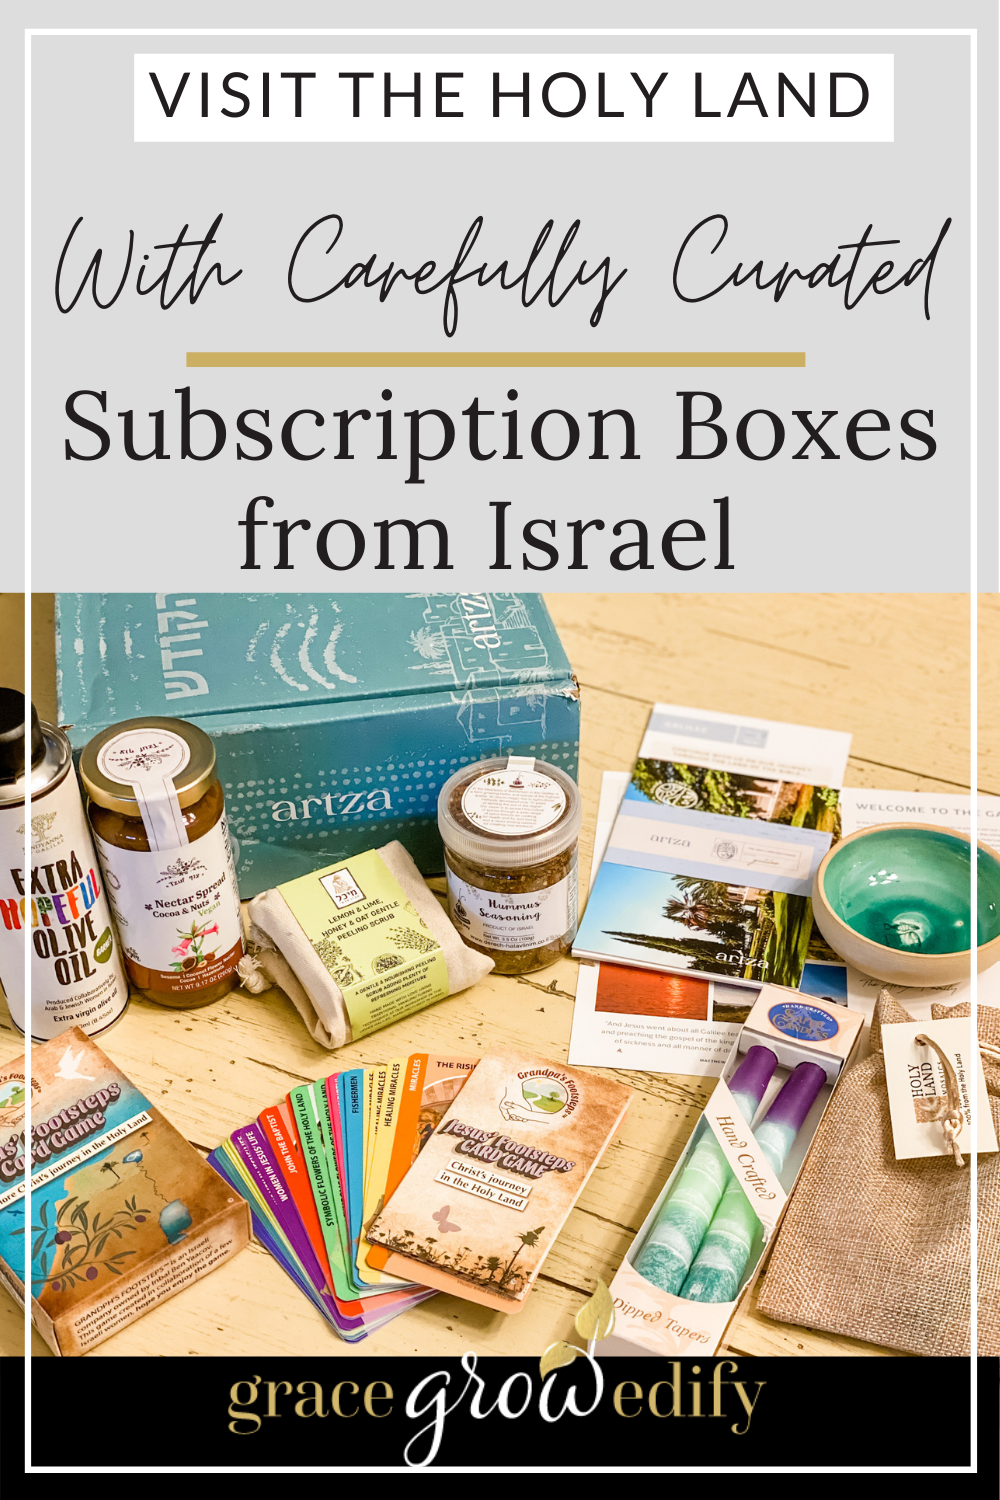 Are you ready to take a virtual trip to Israel? Immerse yourself in rich culture & history with an Israel subscription box from Artza! #artza #artzabox #israel #giftideas #subscriptionboxes